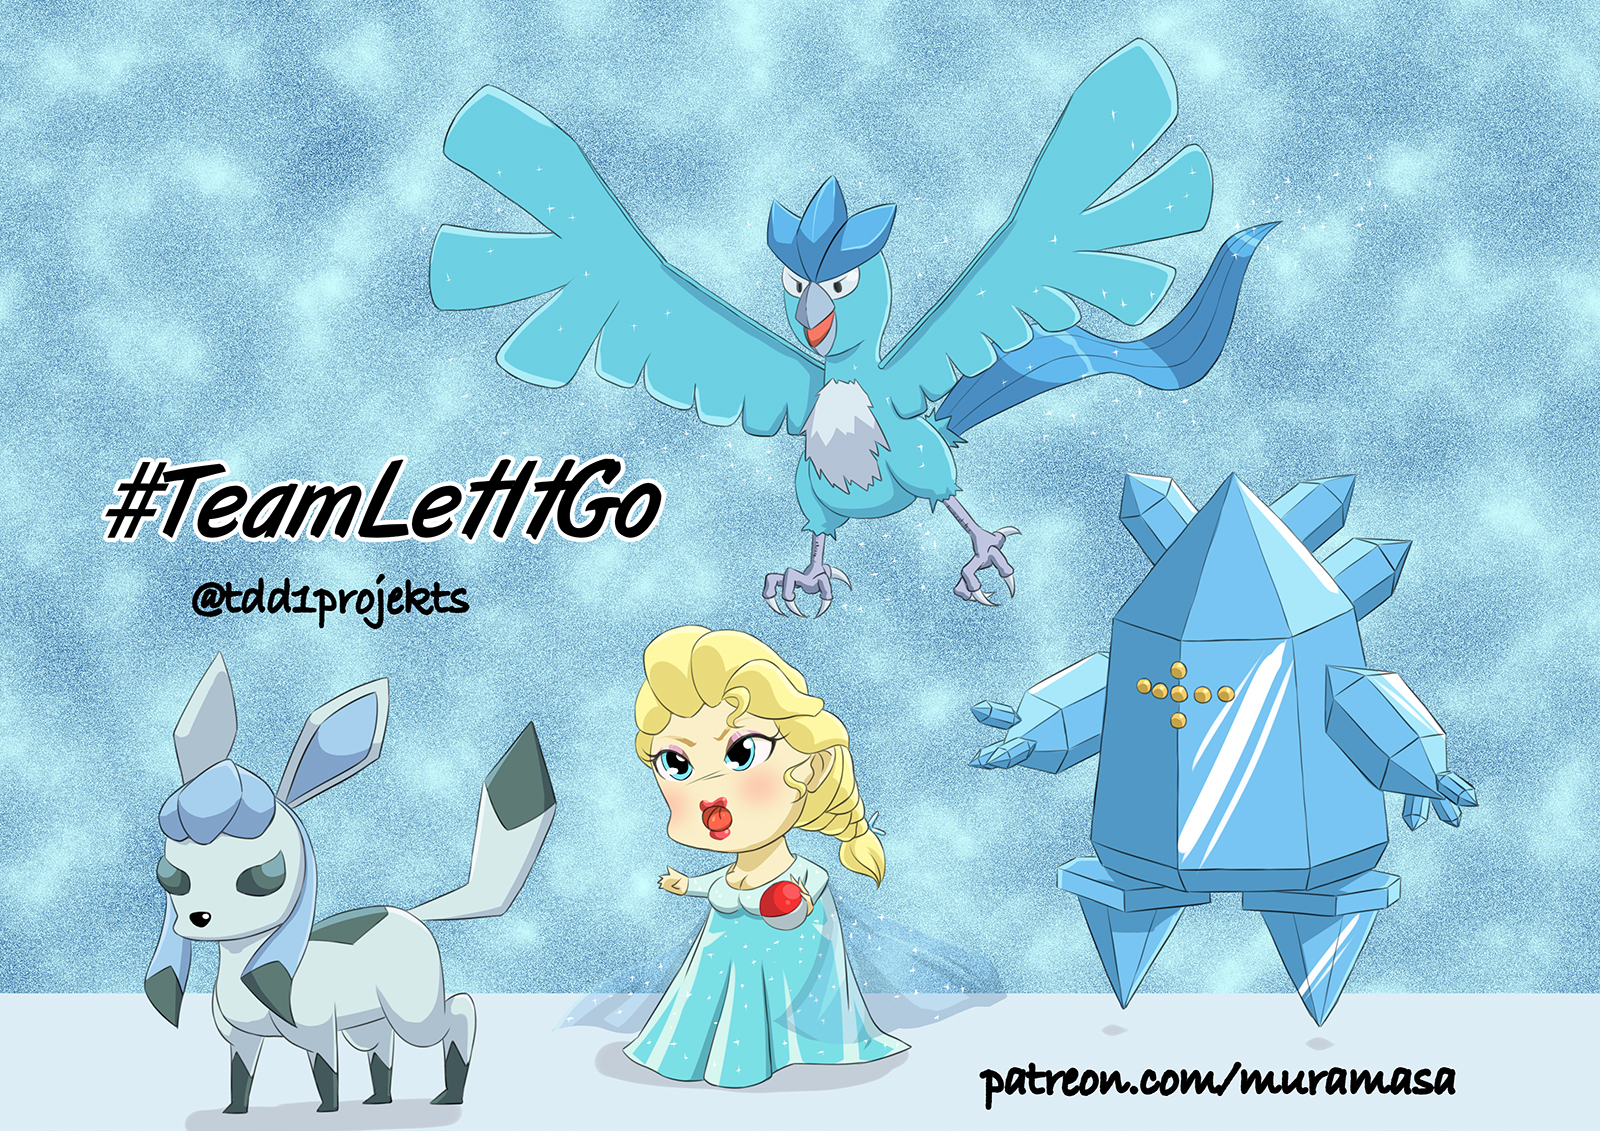 Chibi Elsa and Ice Pokemon #TeamLetItGo